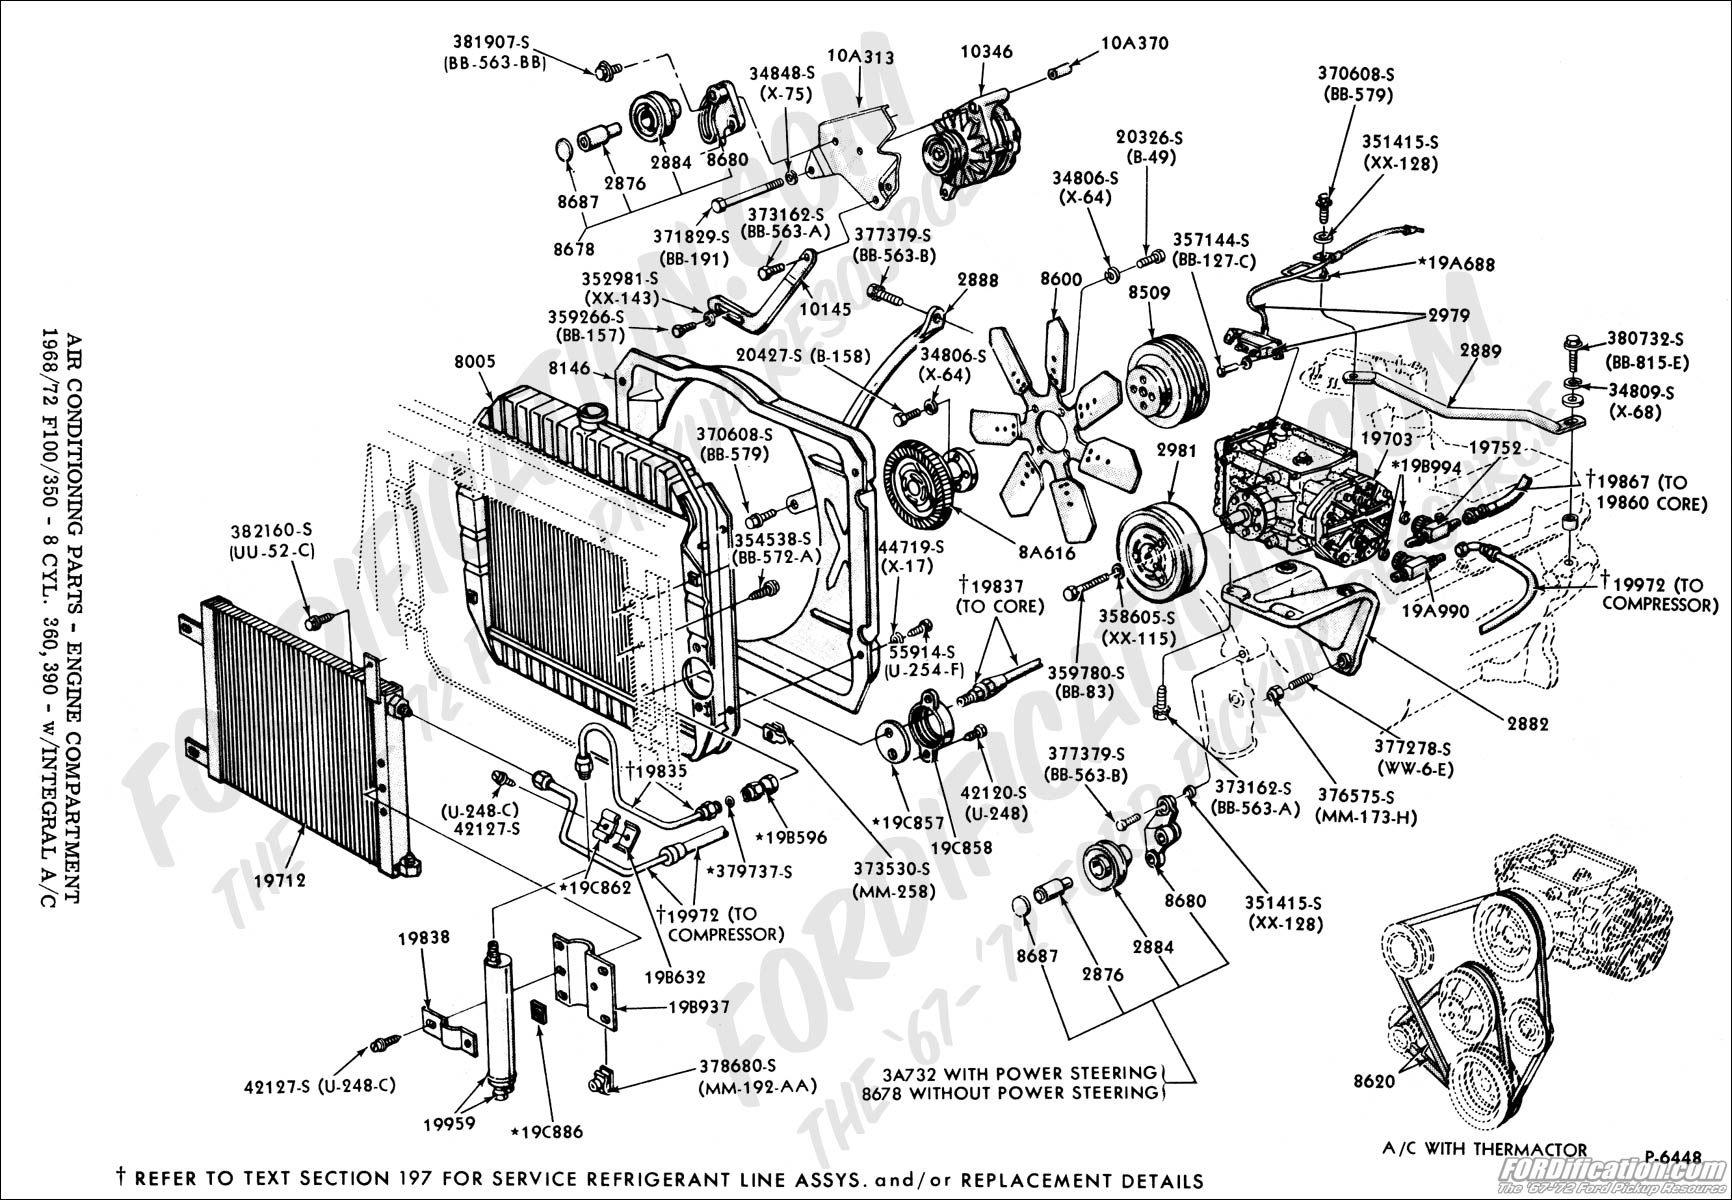 mazda protege engine diagram  mazda  free engine image for